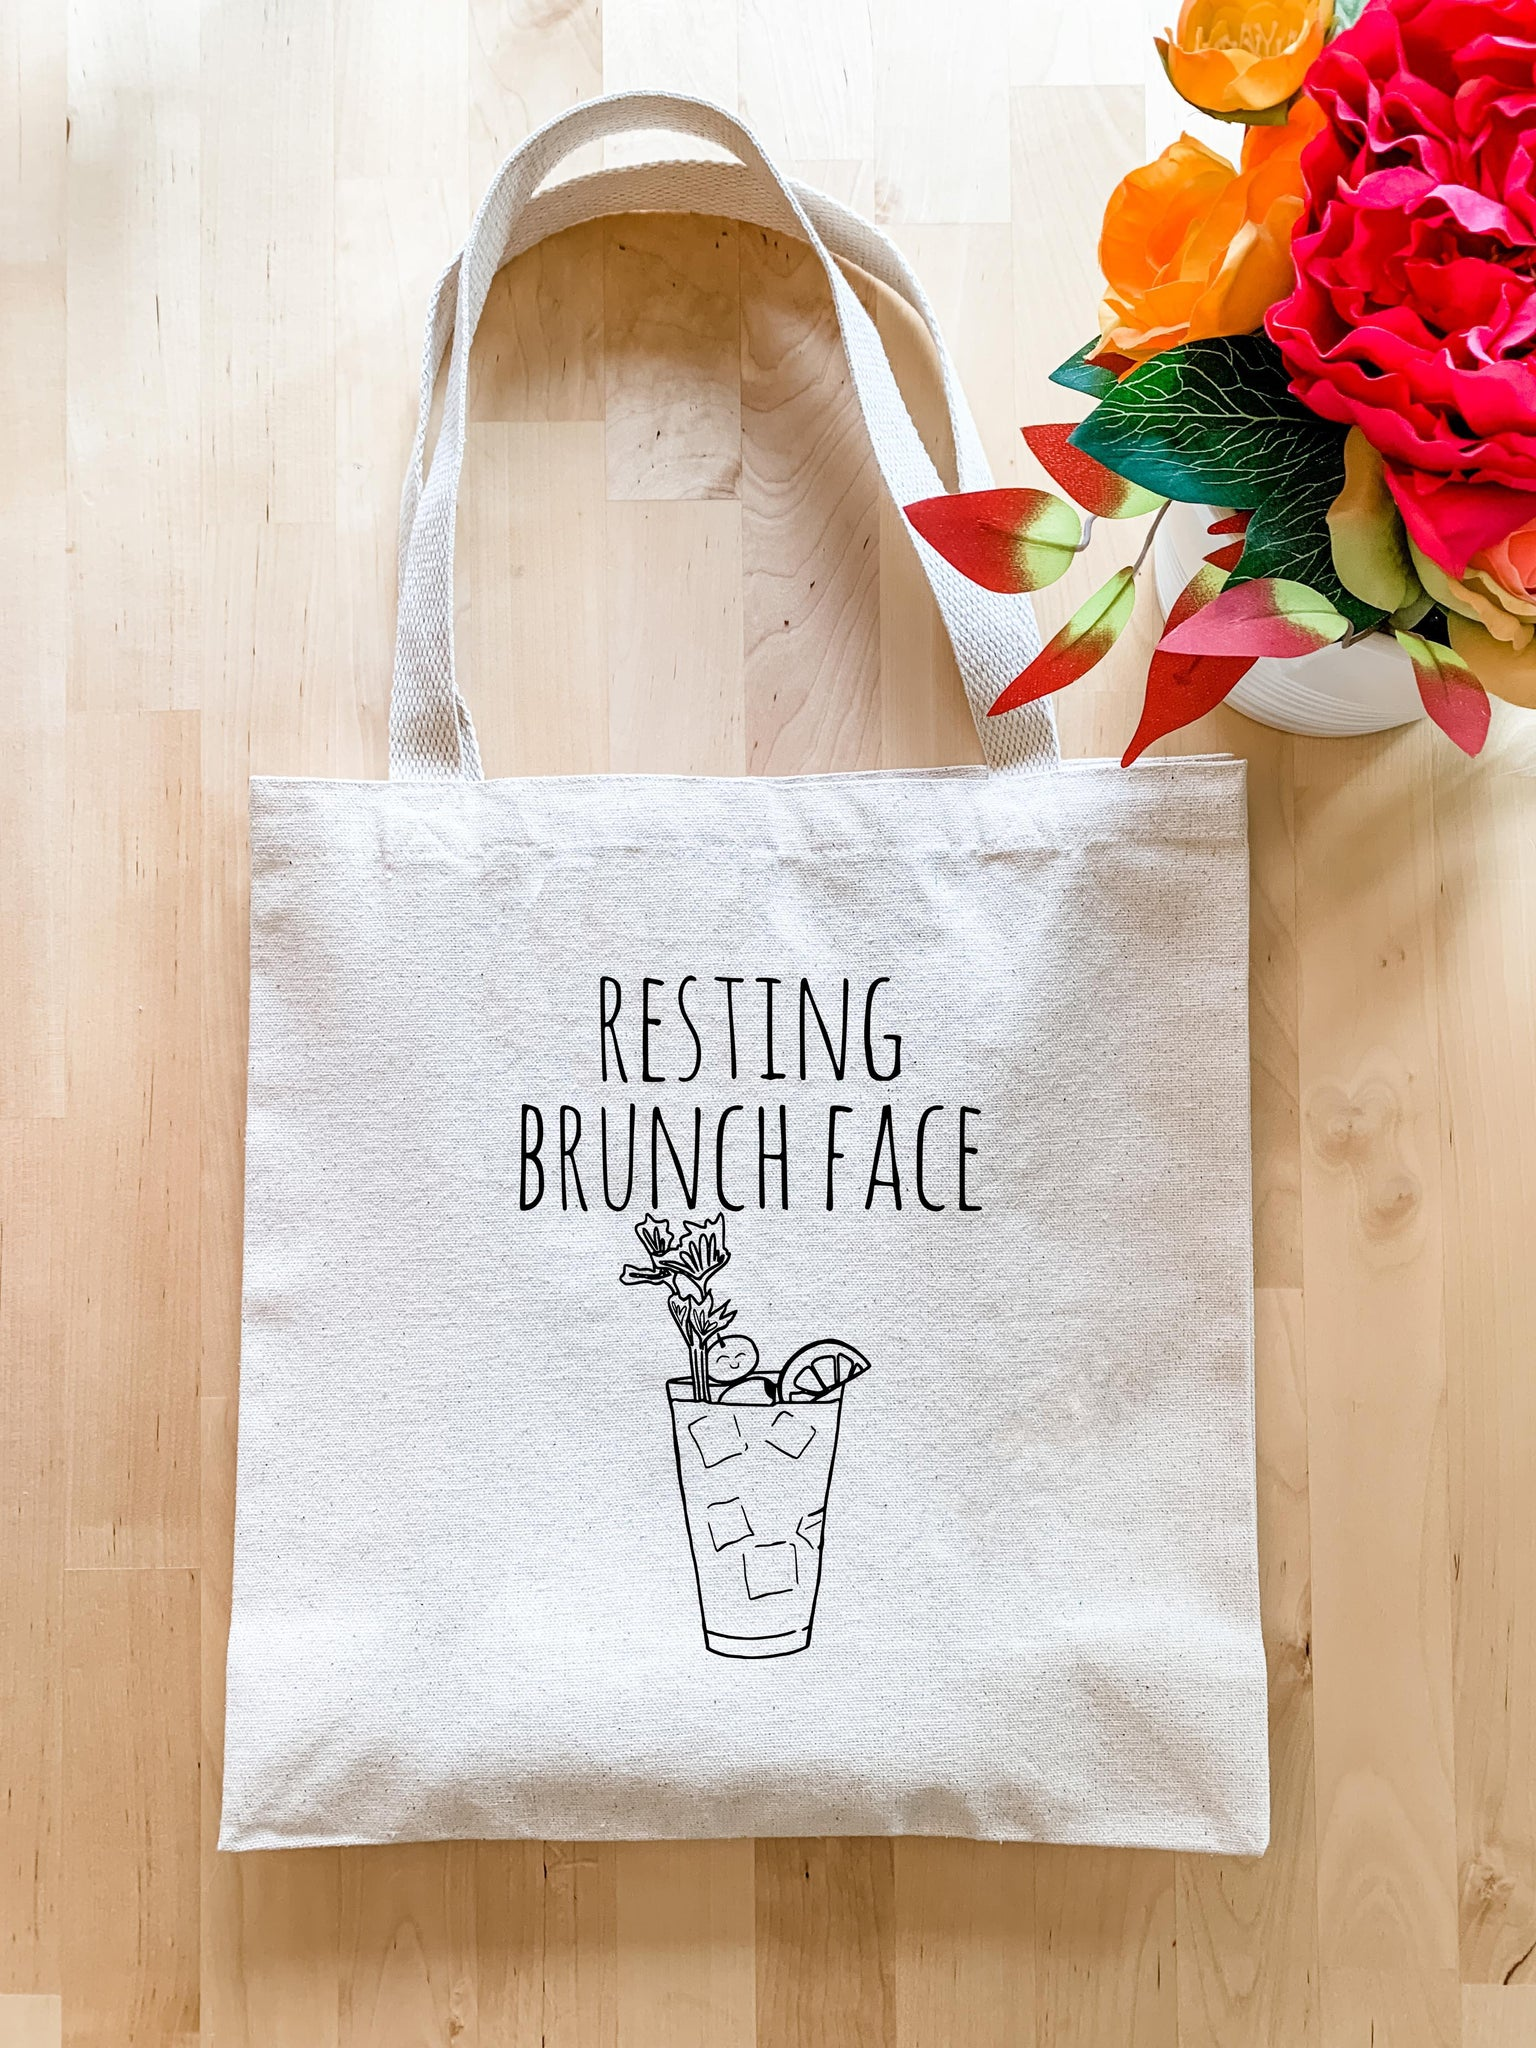 Resting Brunch Face - Tote Bag - MoonlightMakers